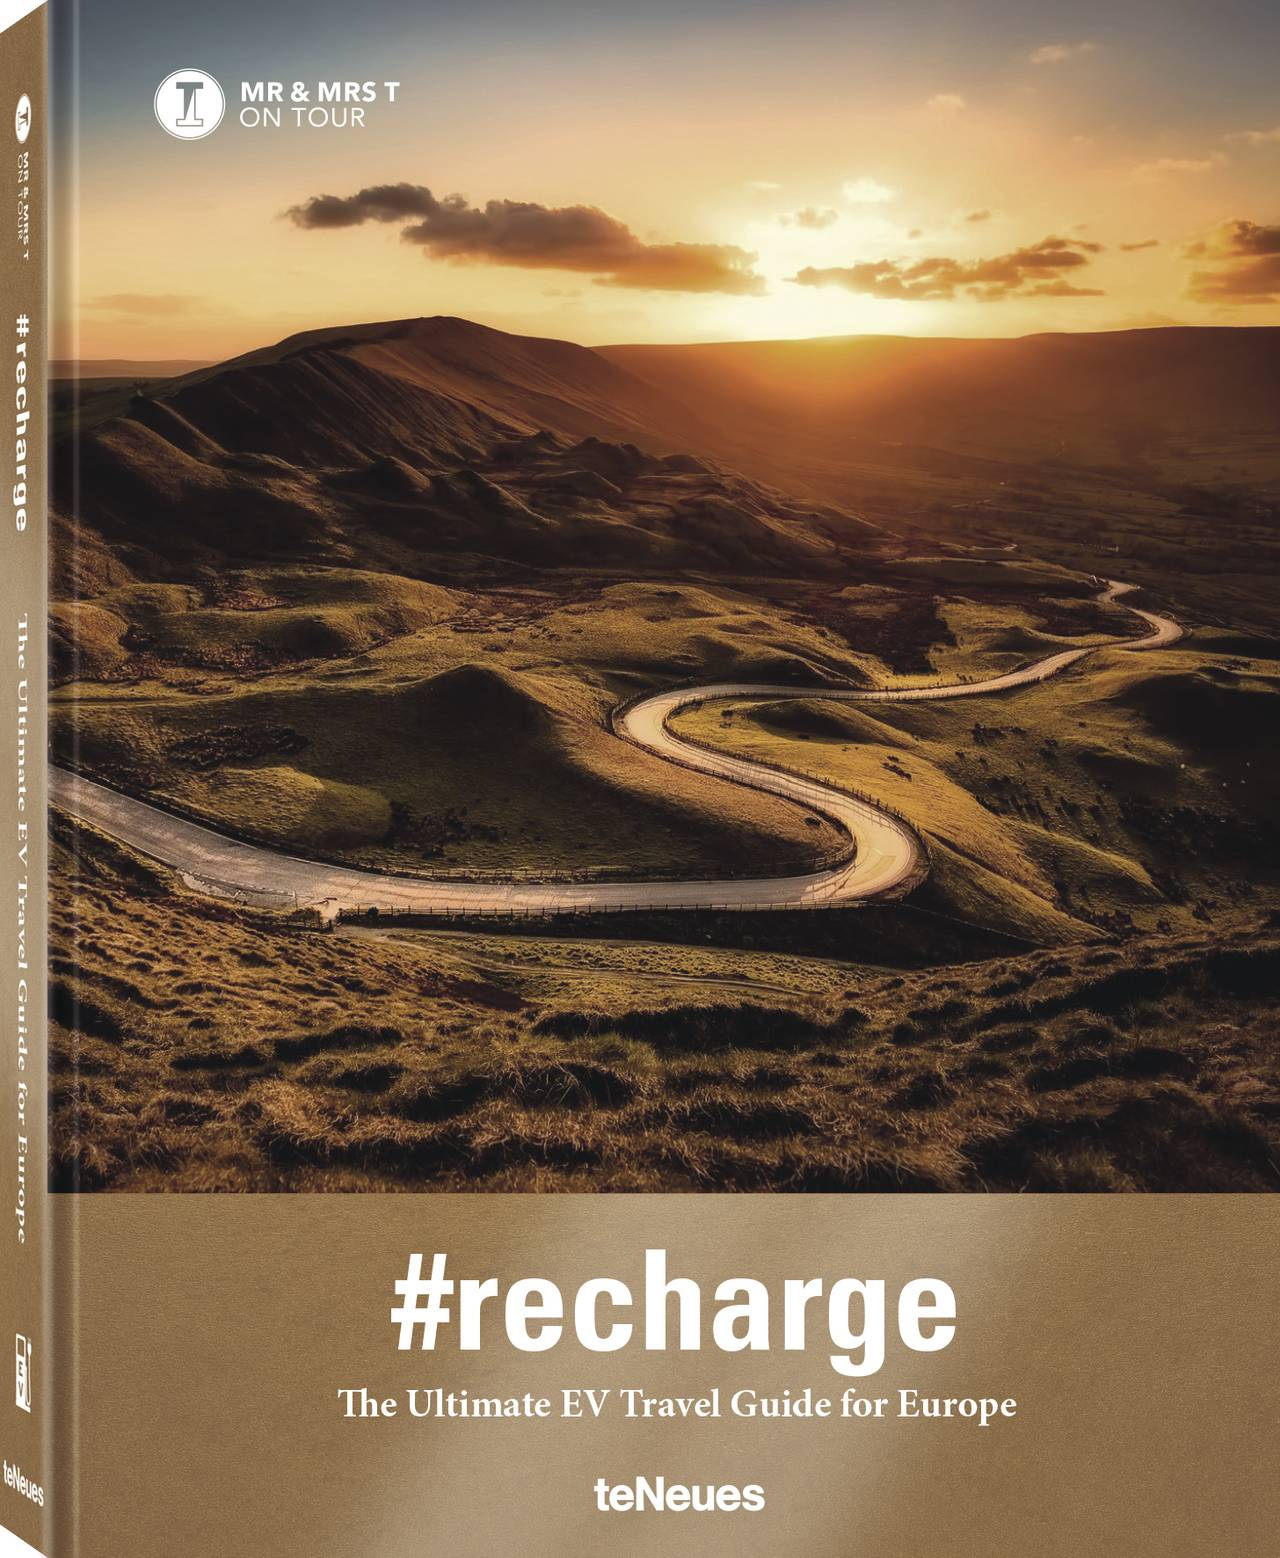 © #recharge - The Ultimate EV Travel Guide for Europe - MR & MRS T ON TOUR, Ralf Schwesinger & Nicole Wanner, published by teNeues, www.teneues.com  Photo © David Mark at Pixabay